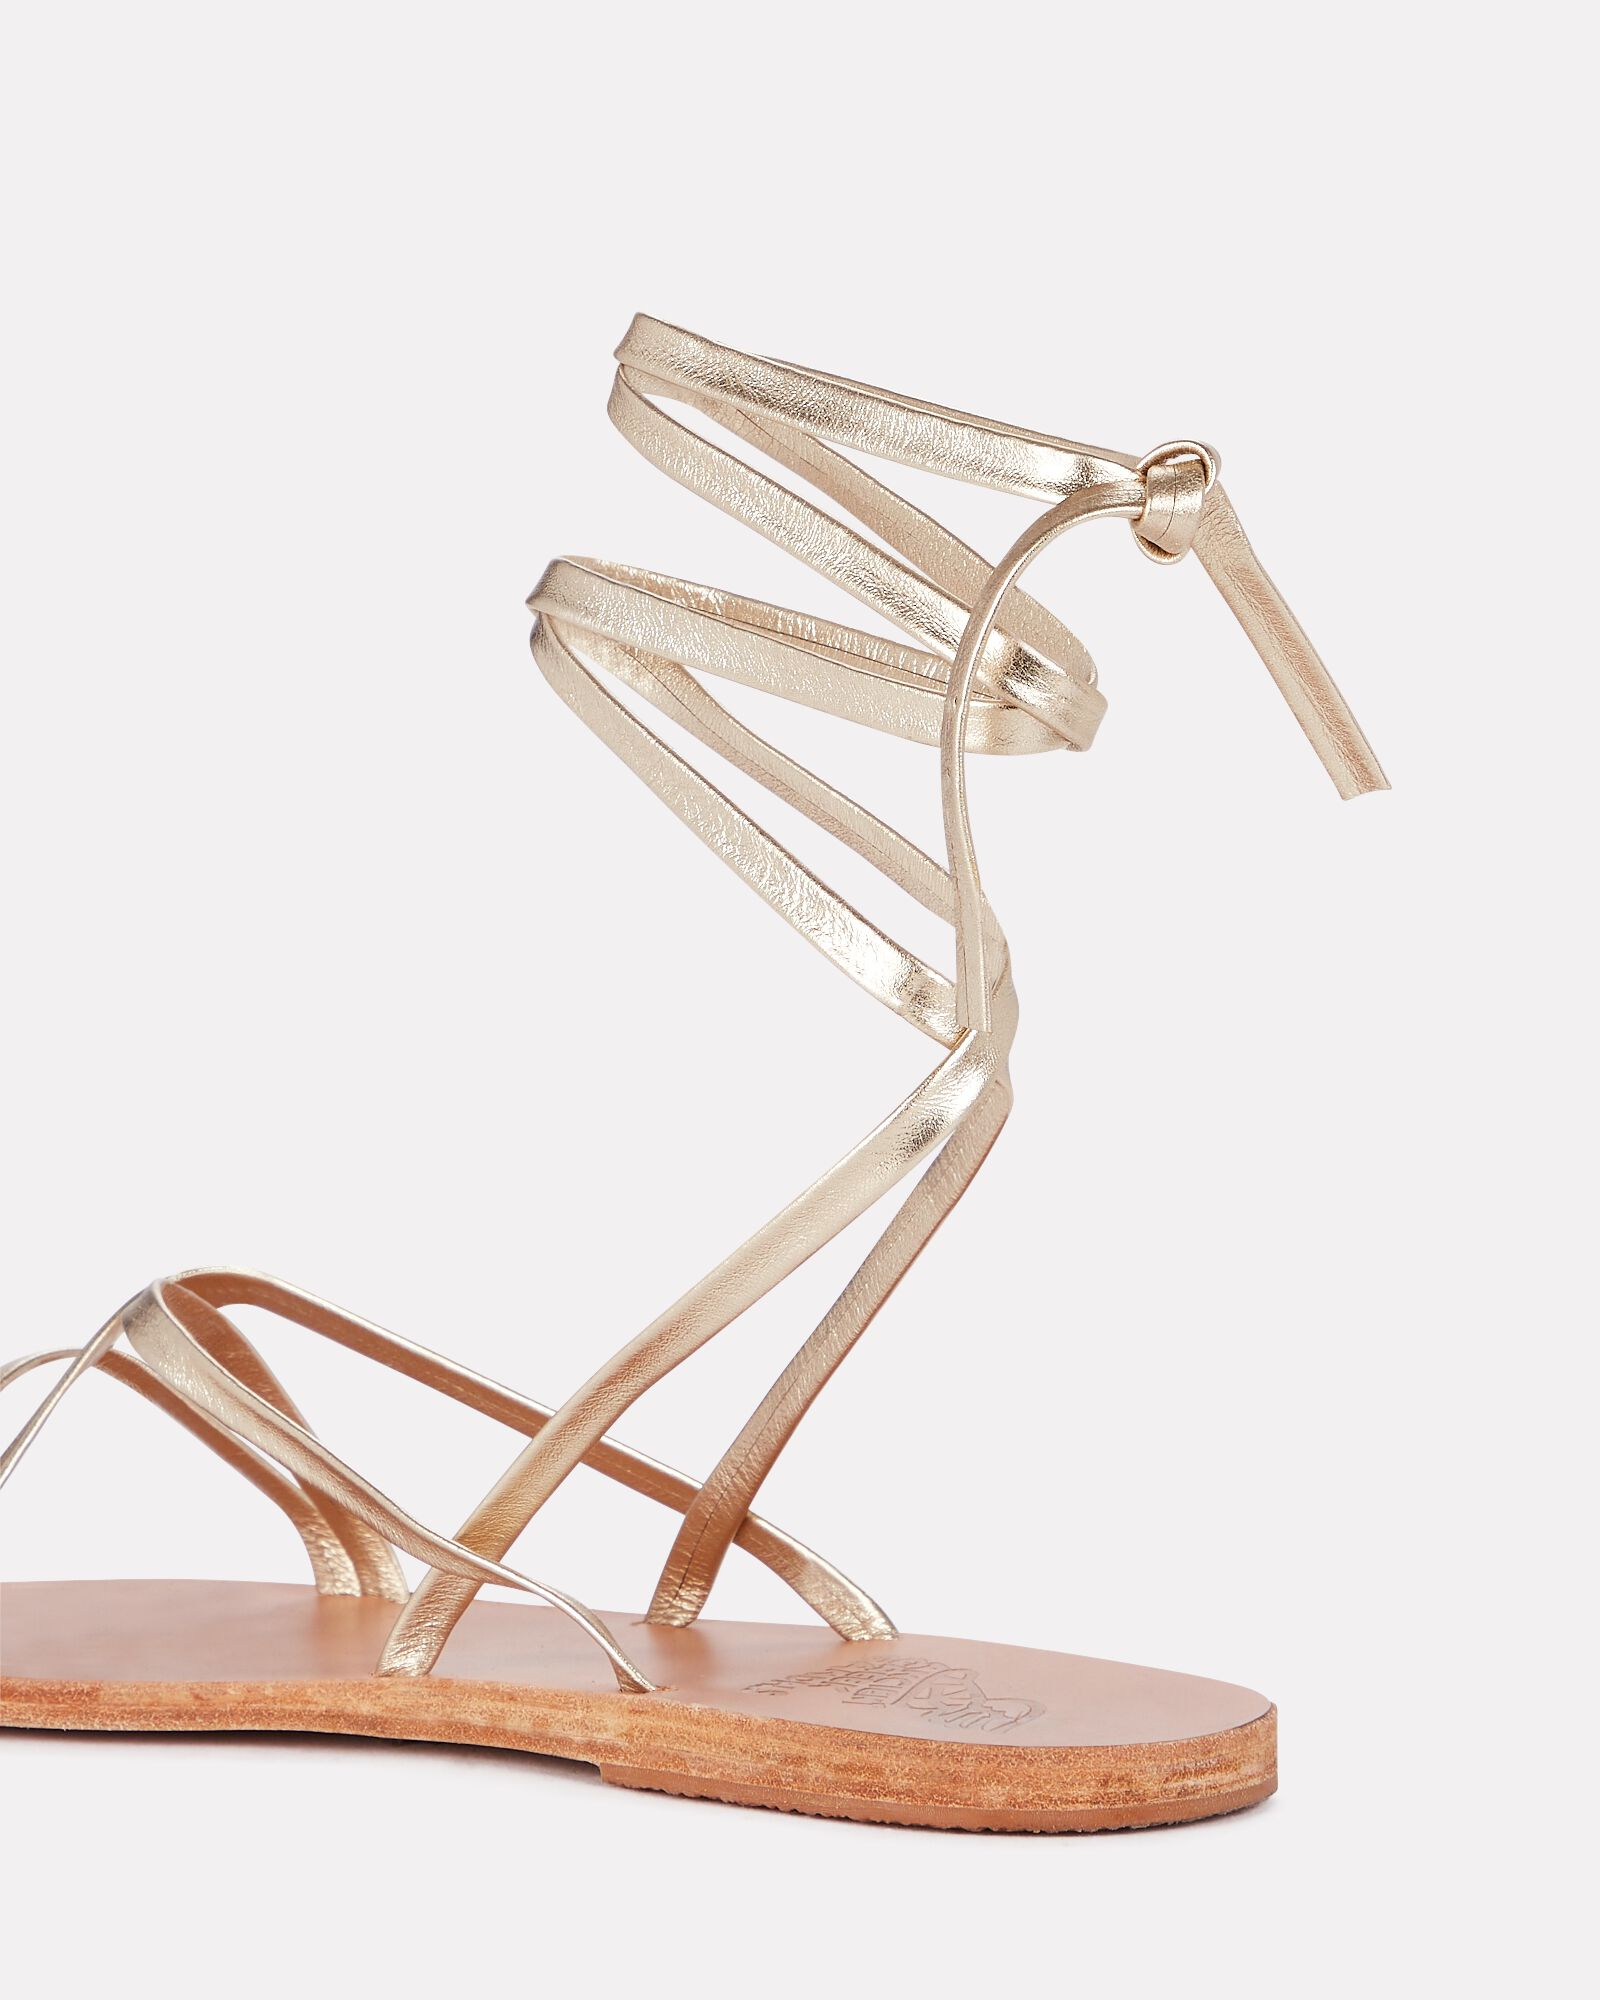 Morfi Metallic Leather Wrap Sandals, GOLD, hi-res